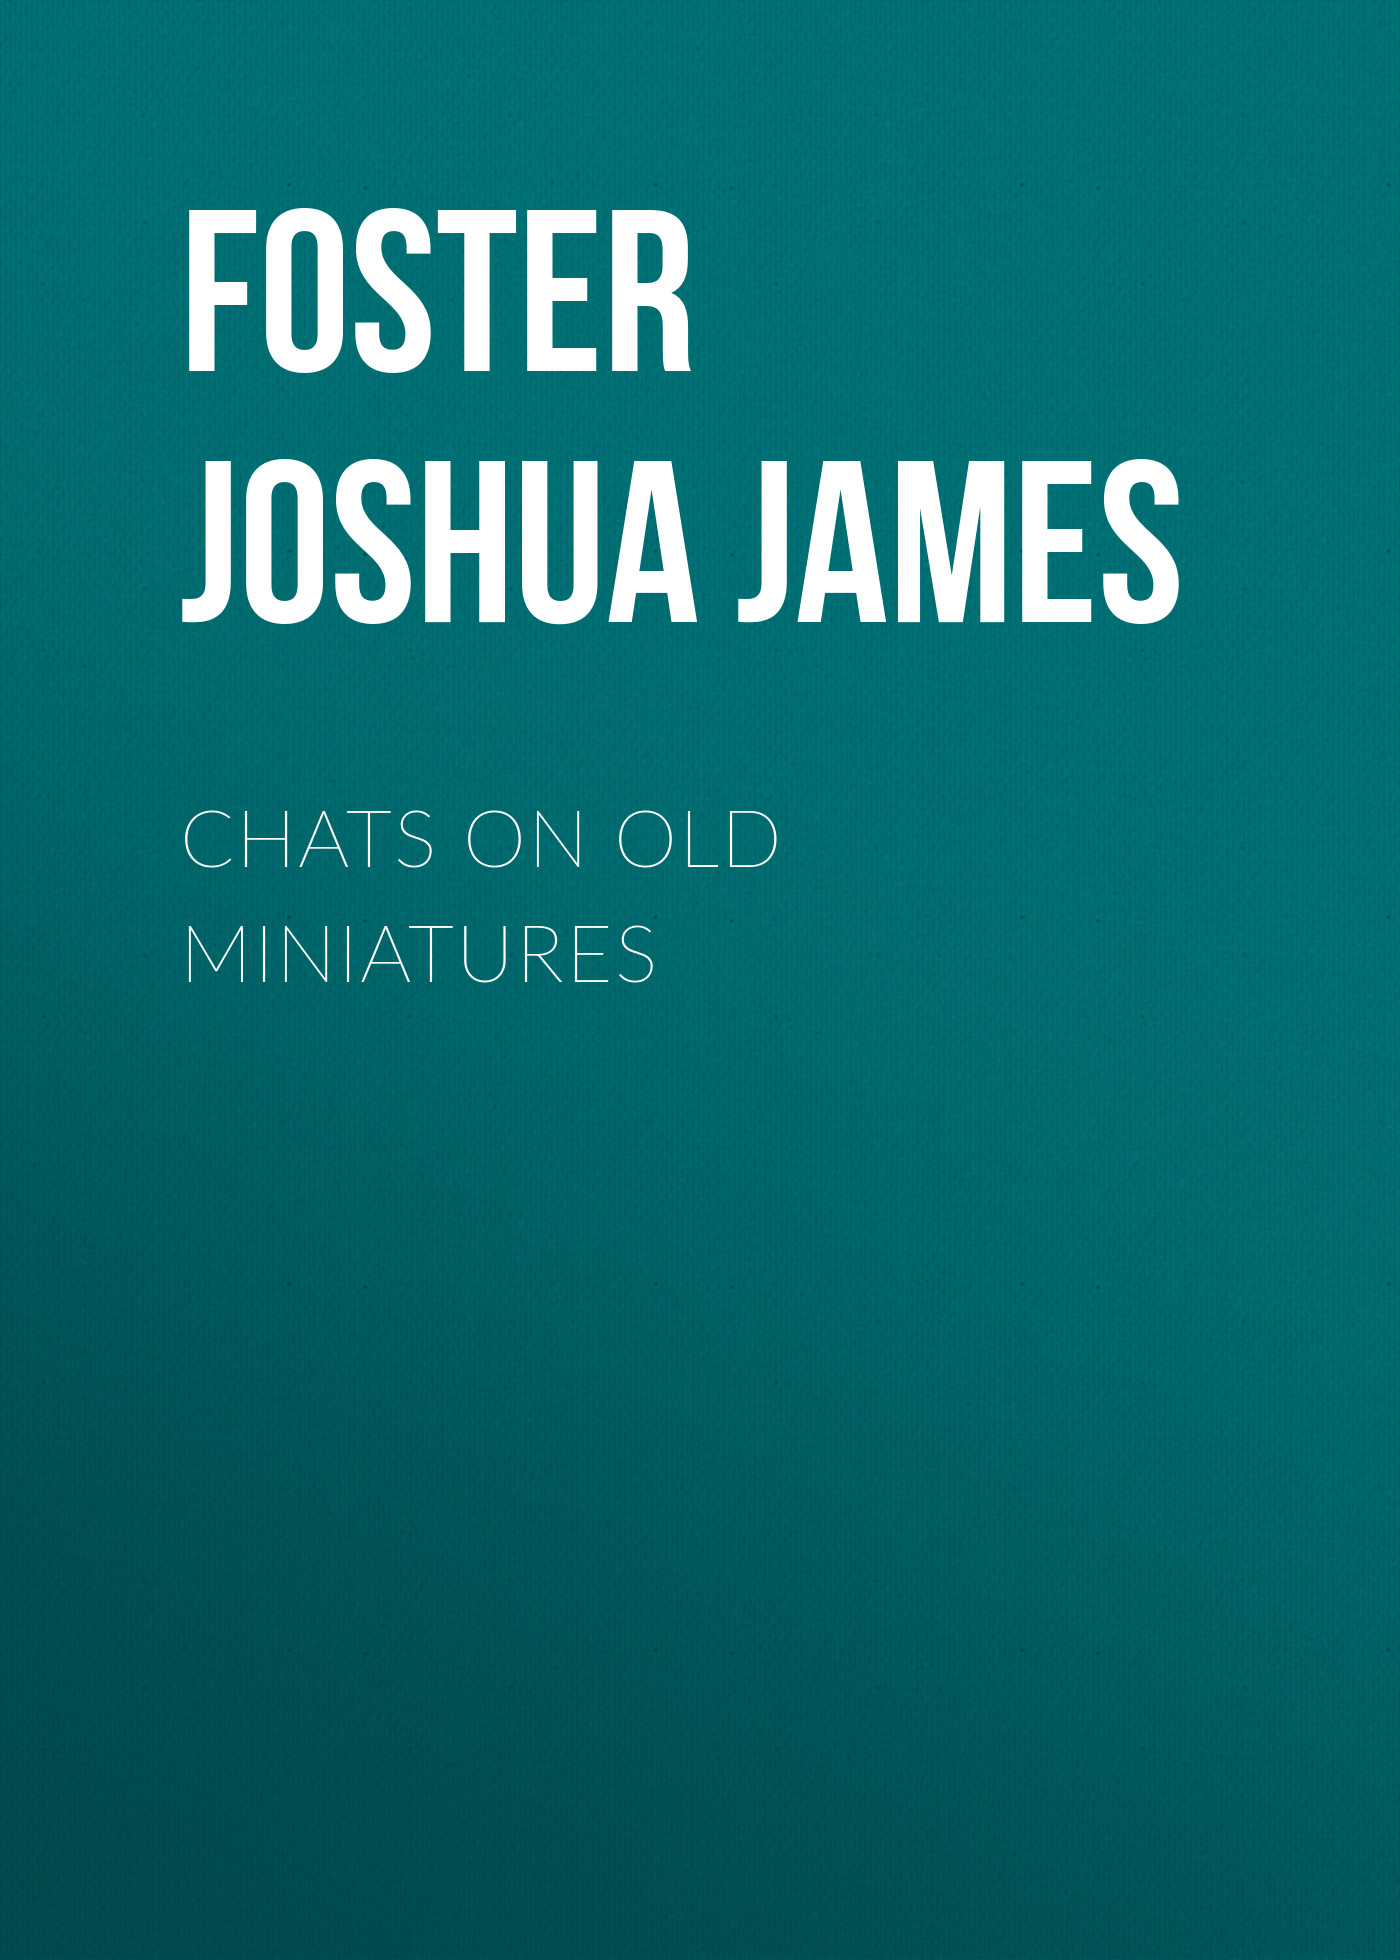 Foster Joshua James Chats on Old Miniatures foster